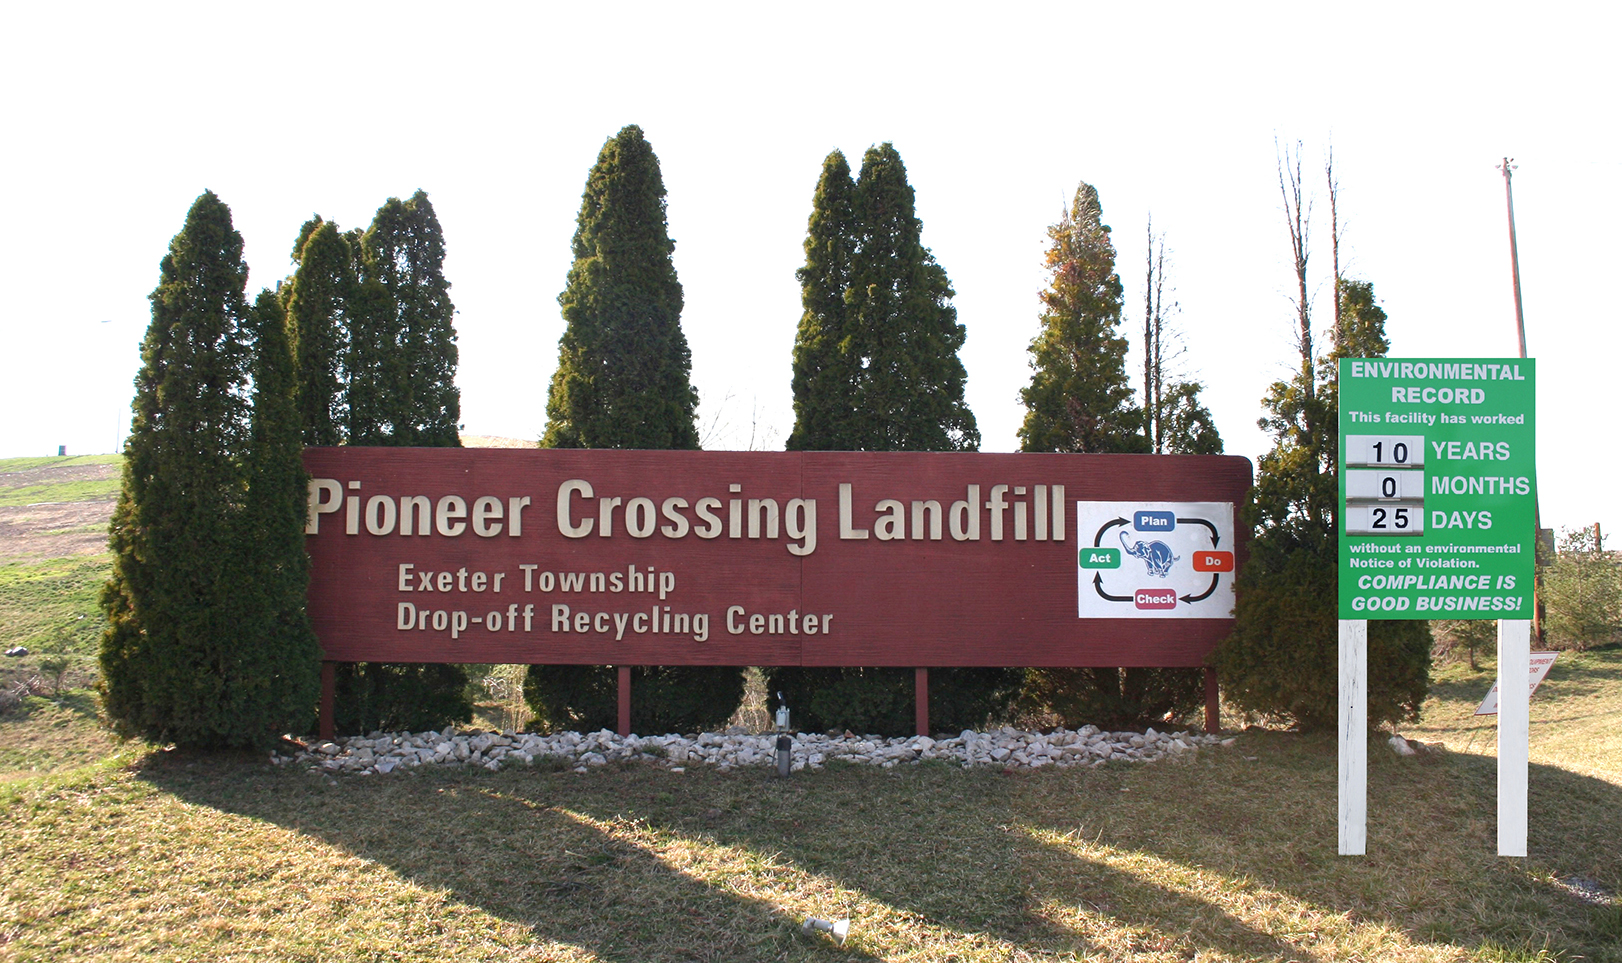 Exeter Township and Mascaro's Pioneer Crossing Landfill bolster successful public-private partnership